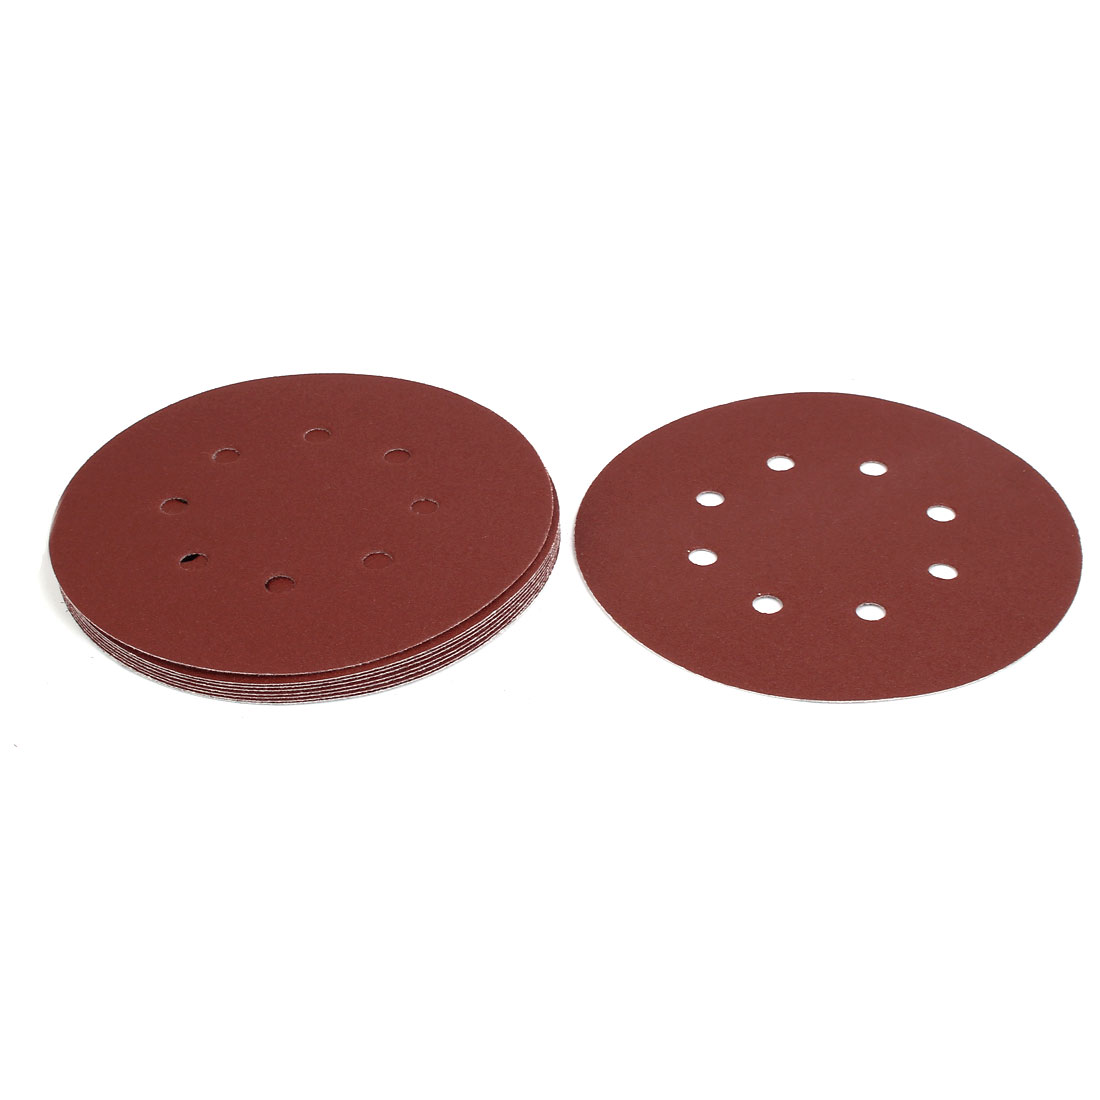 "120 Grit 8 Hole 7"" Diameter Sandpaper Hook Loop Sanding Disc 10 Pcs"